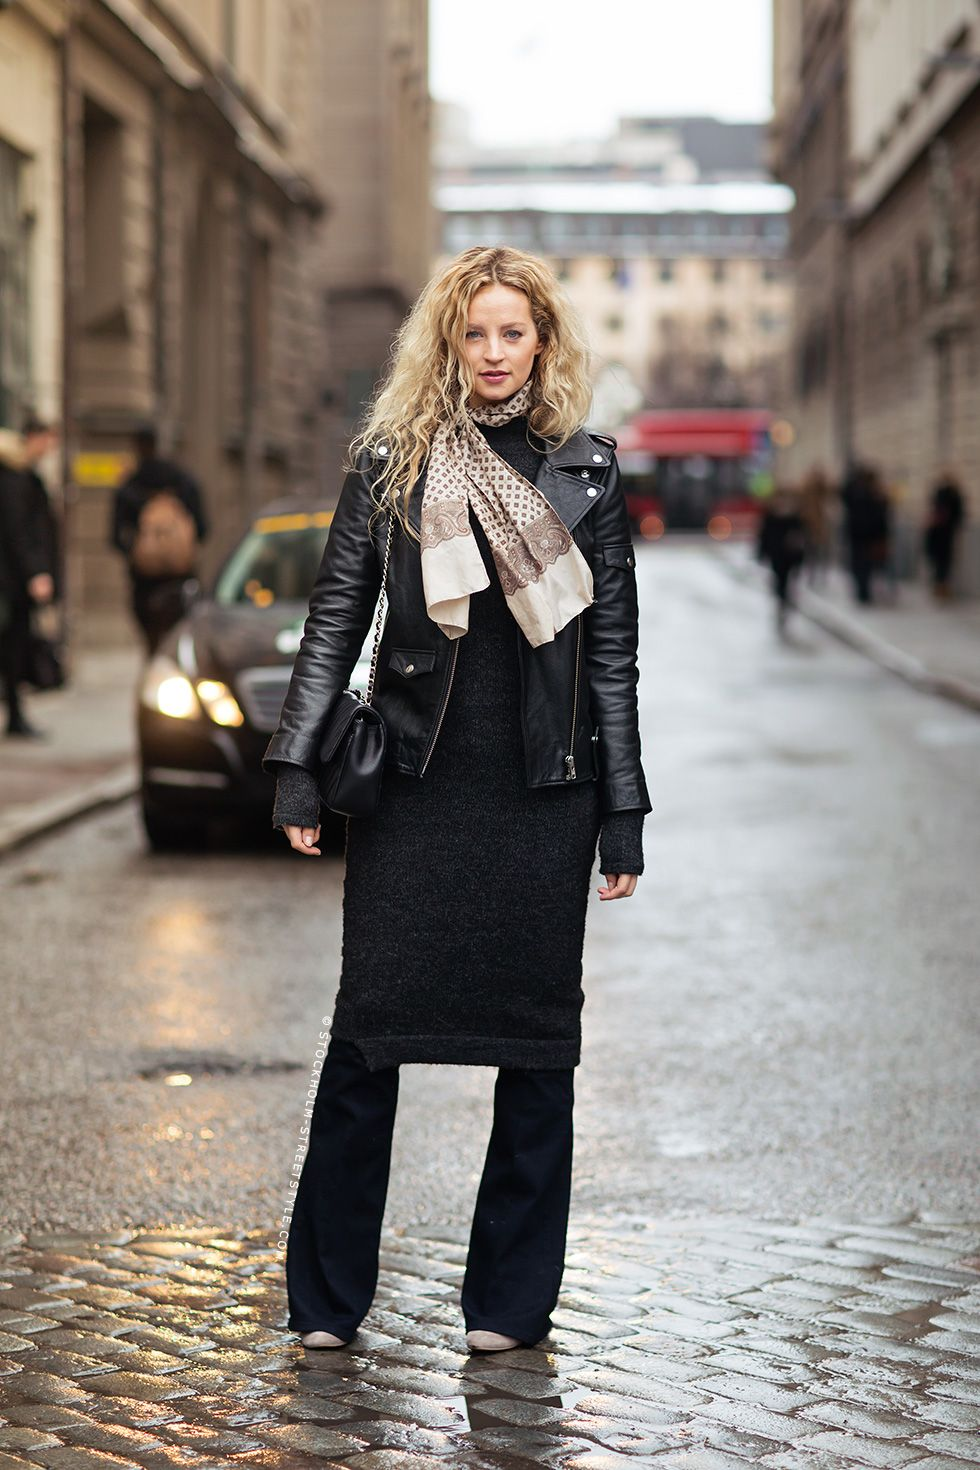 Flared Pants Are Spring 2015's Biggest Trend   StyleCaster